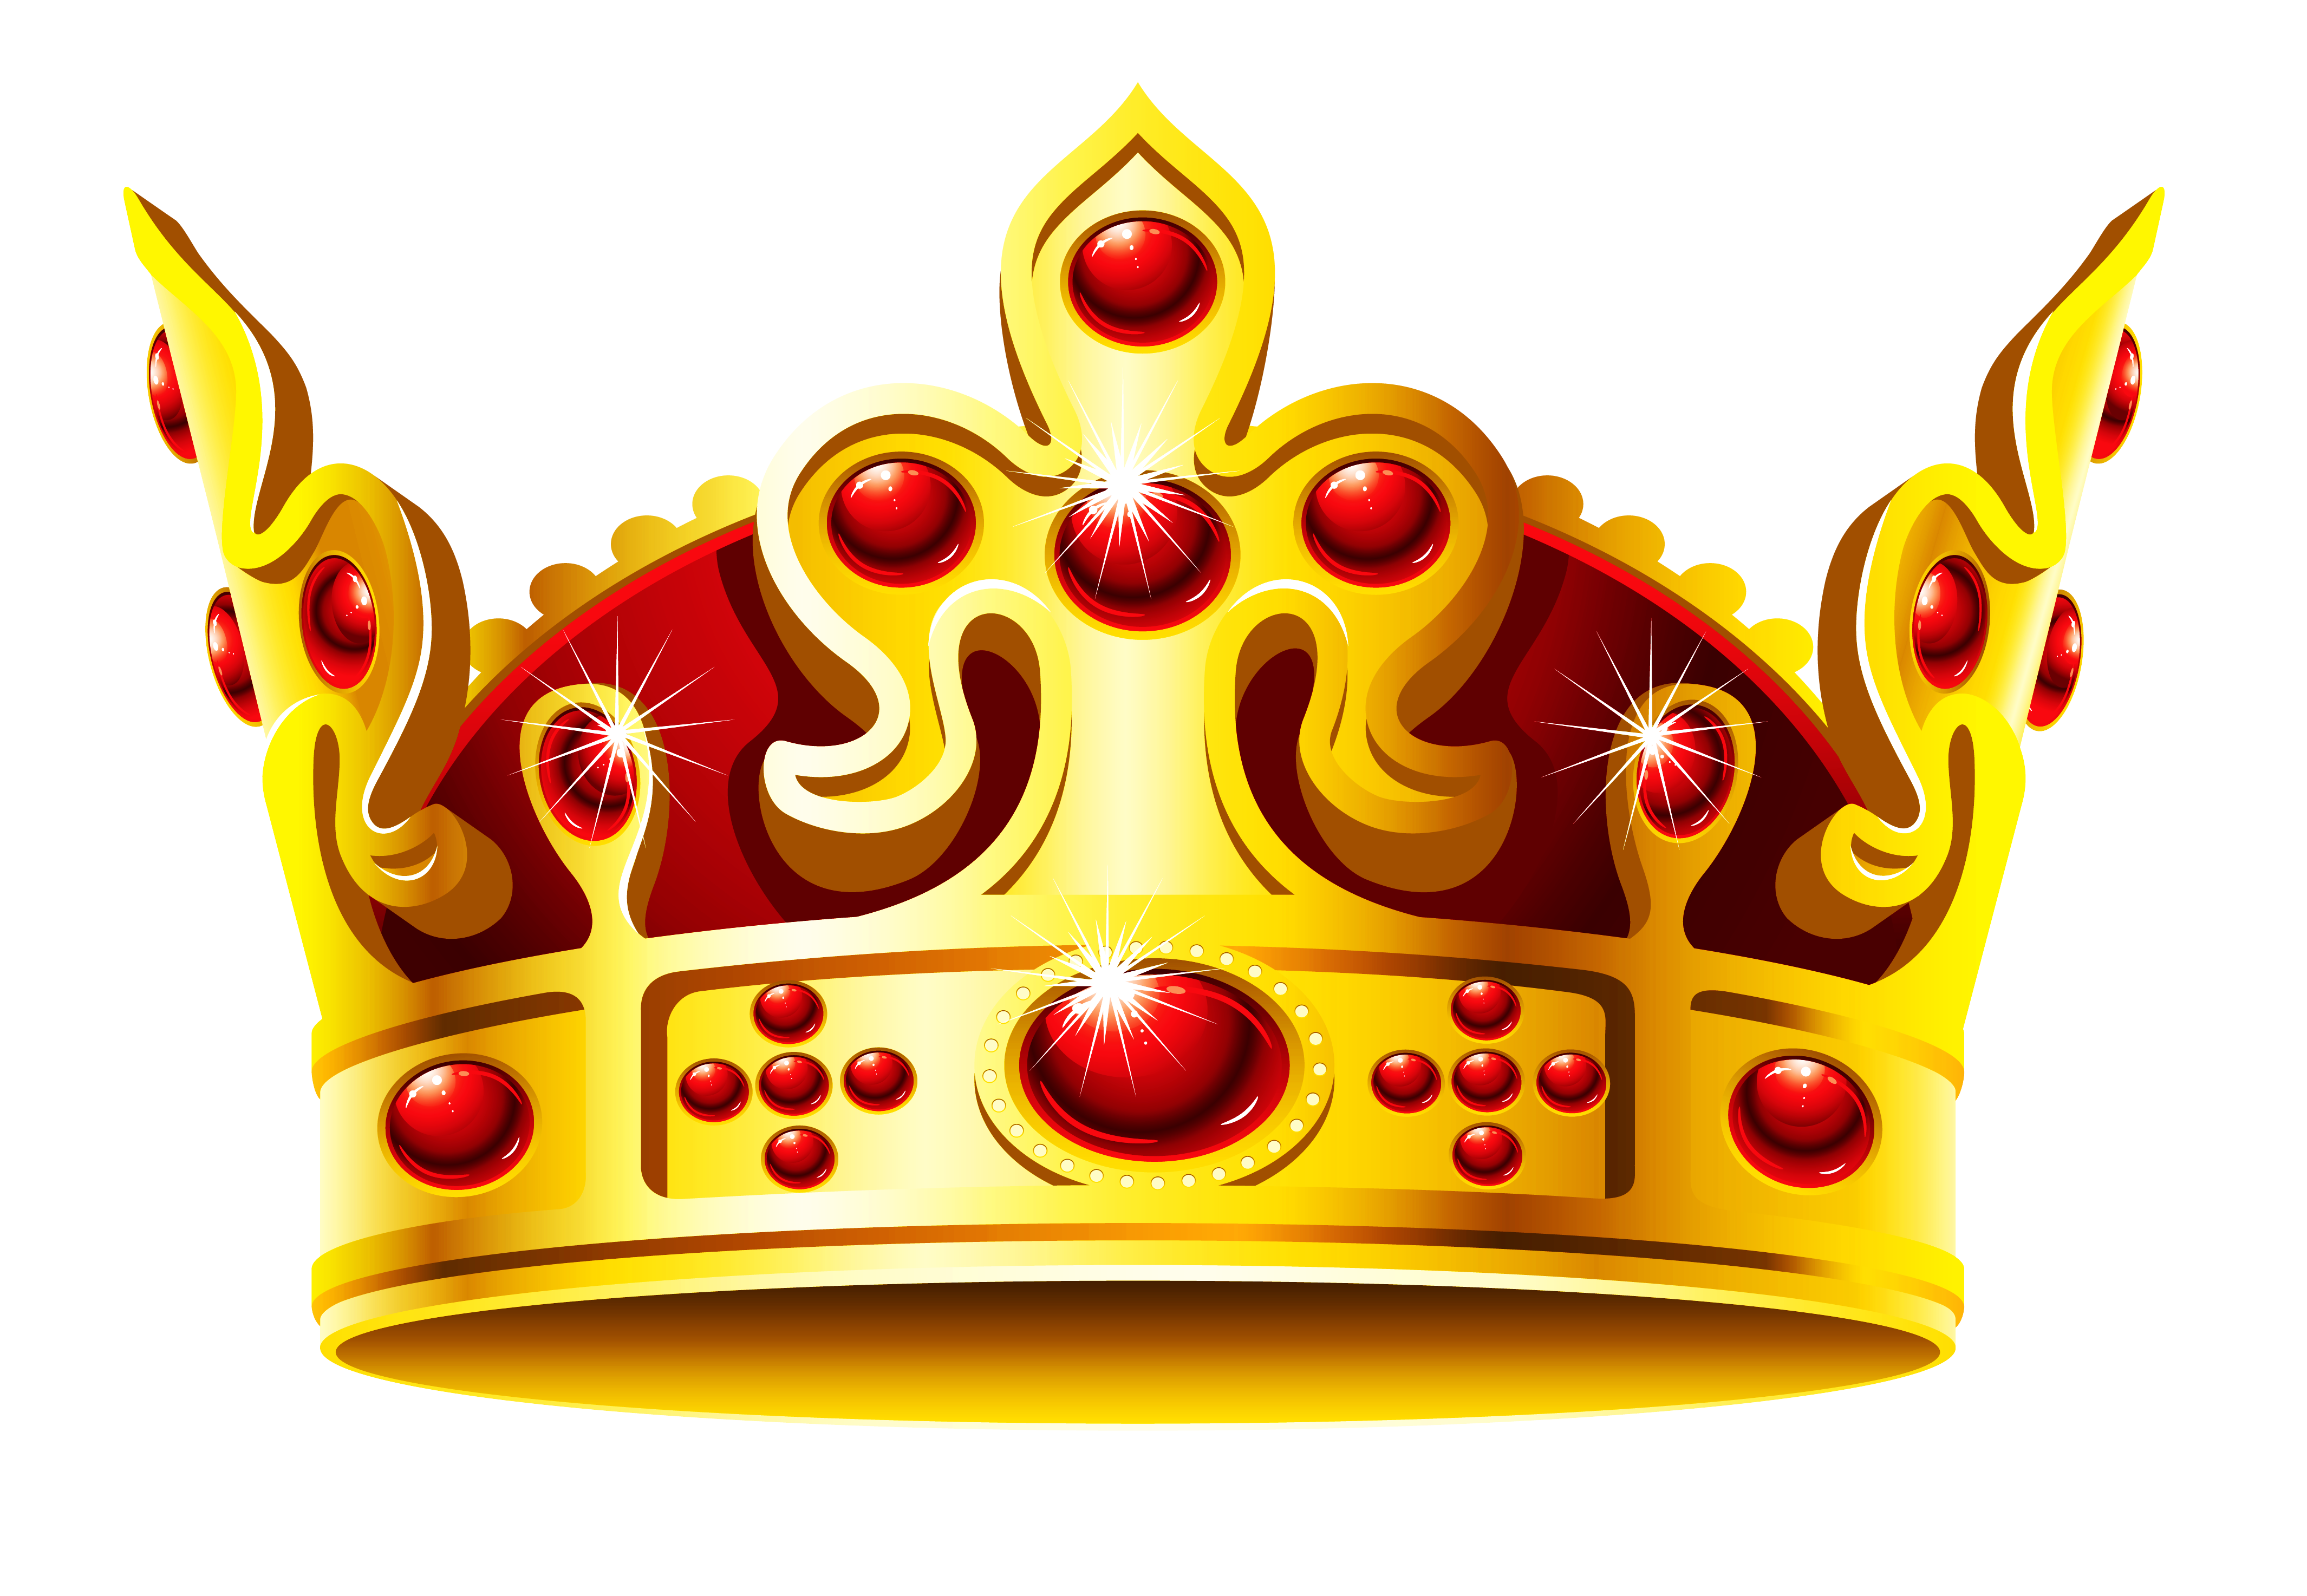 King crown png hd. R clipart red